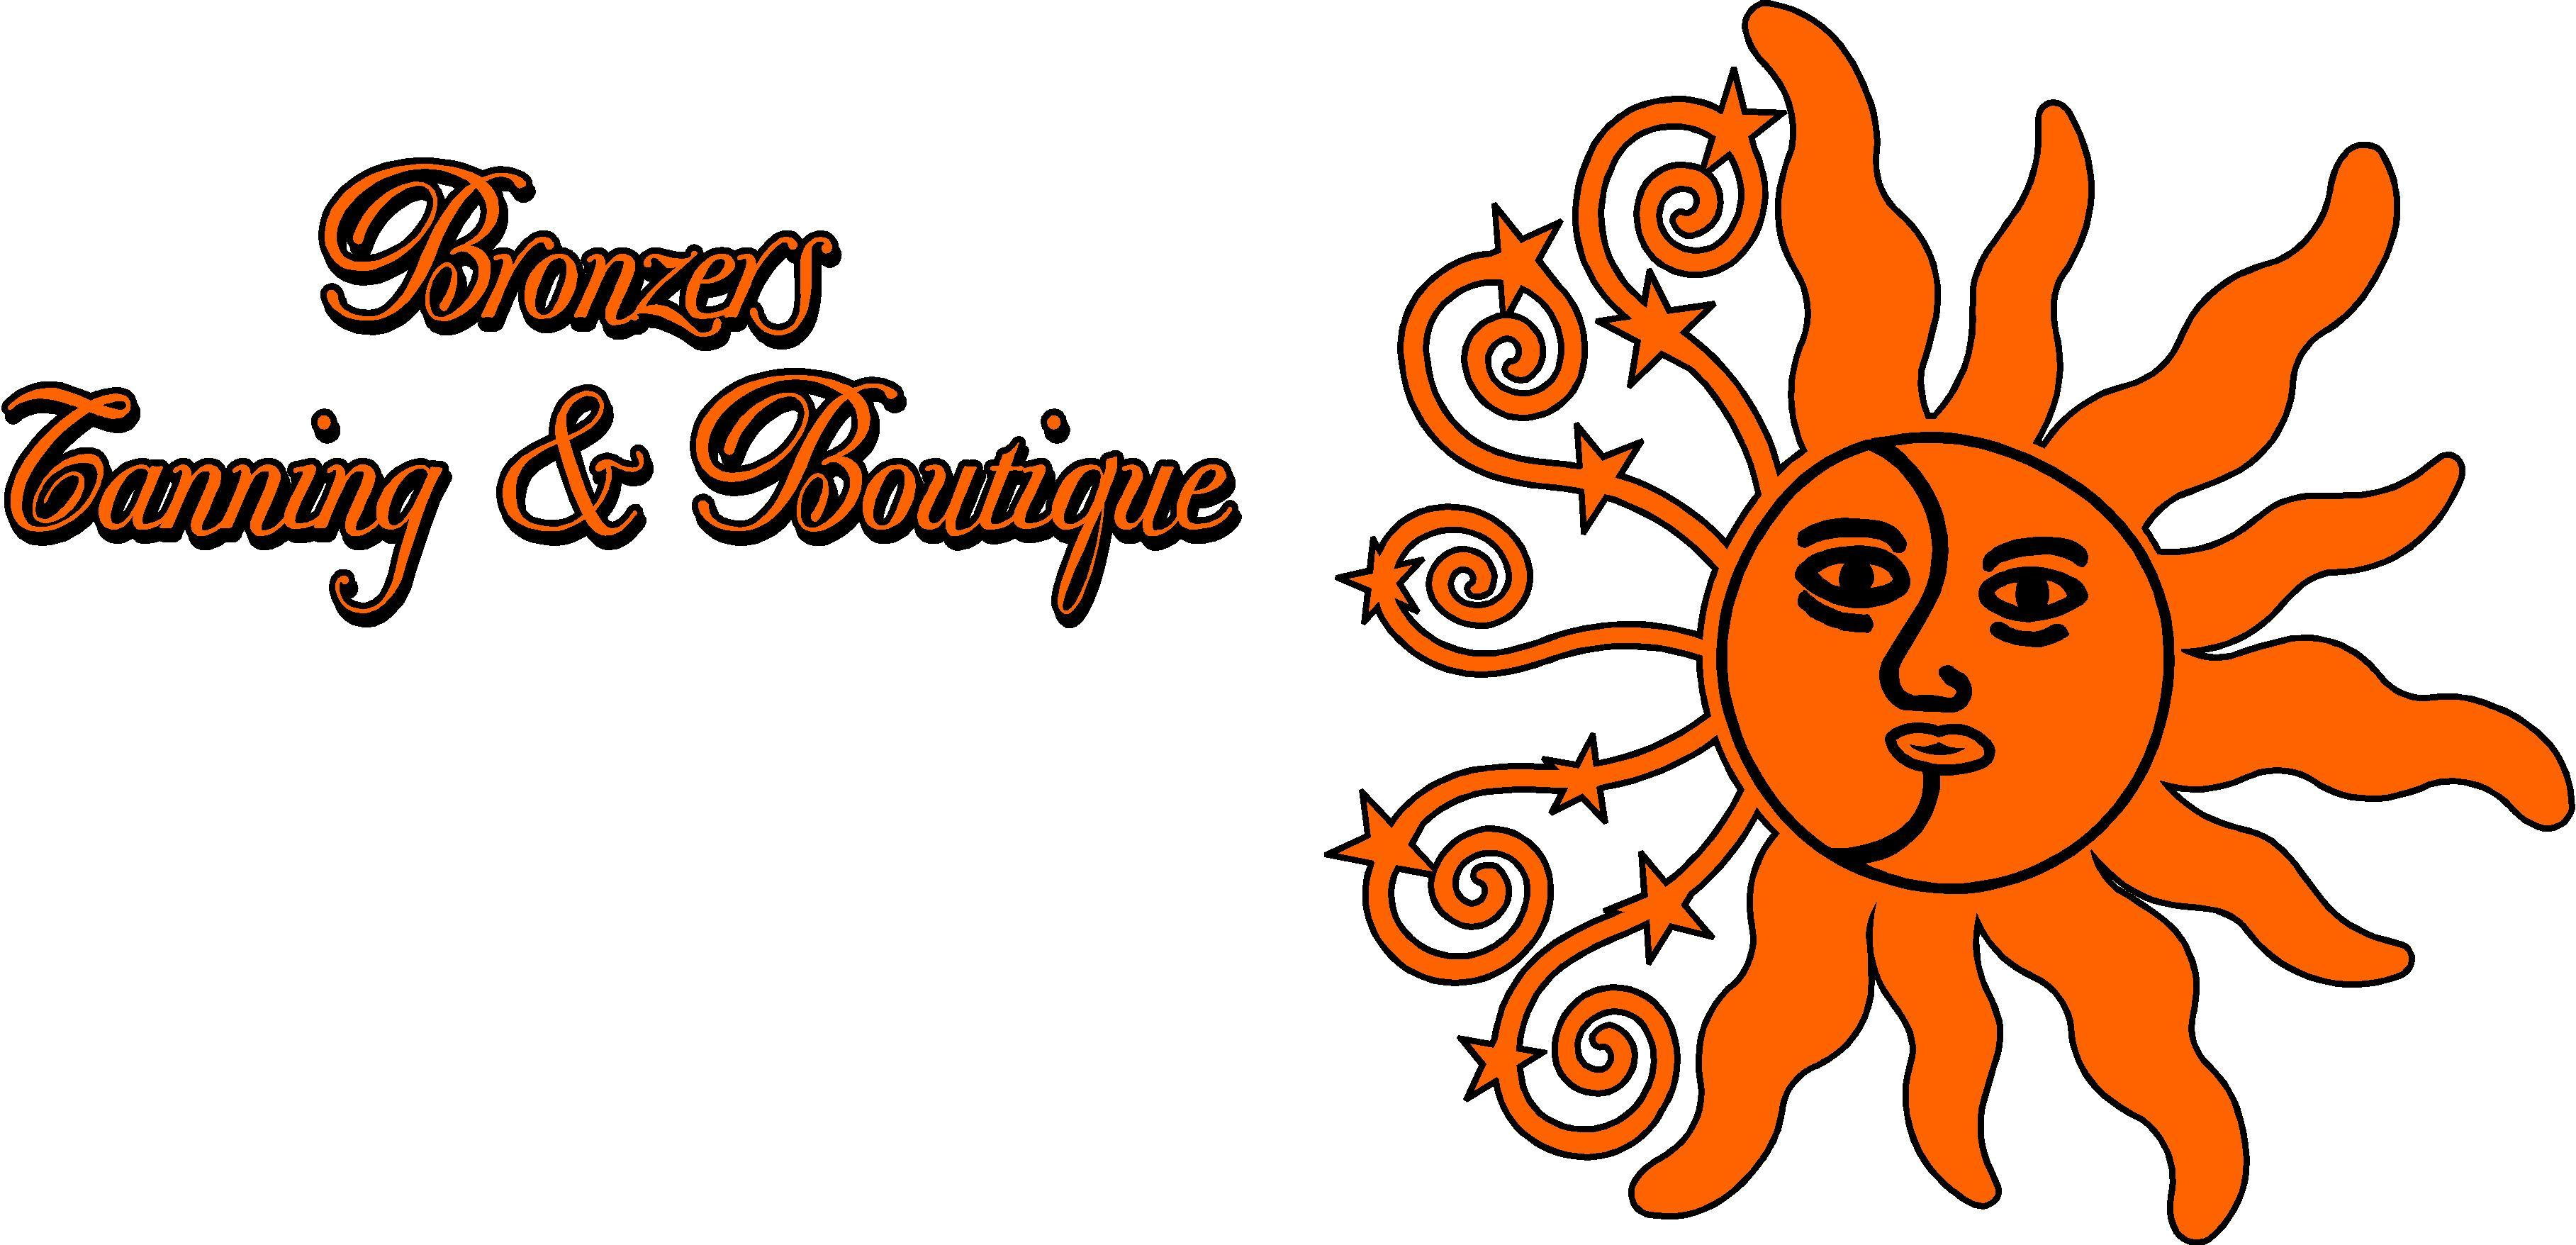 Bronzers Tanning and Boutique